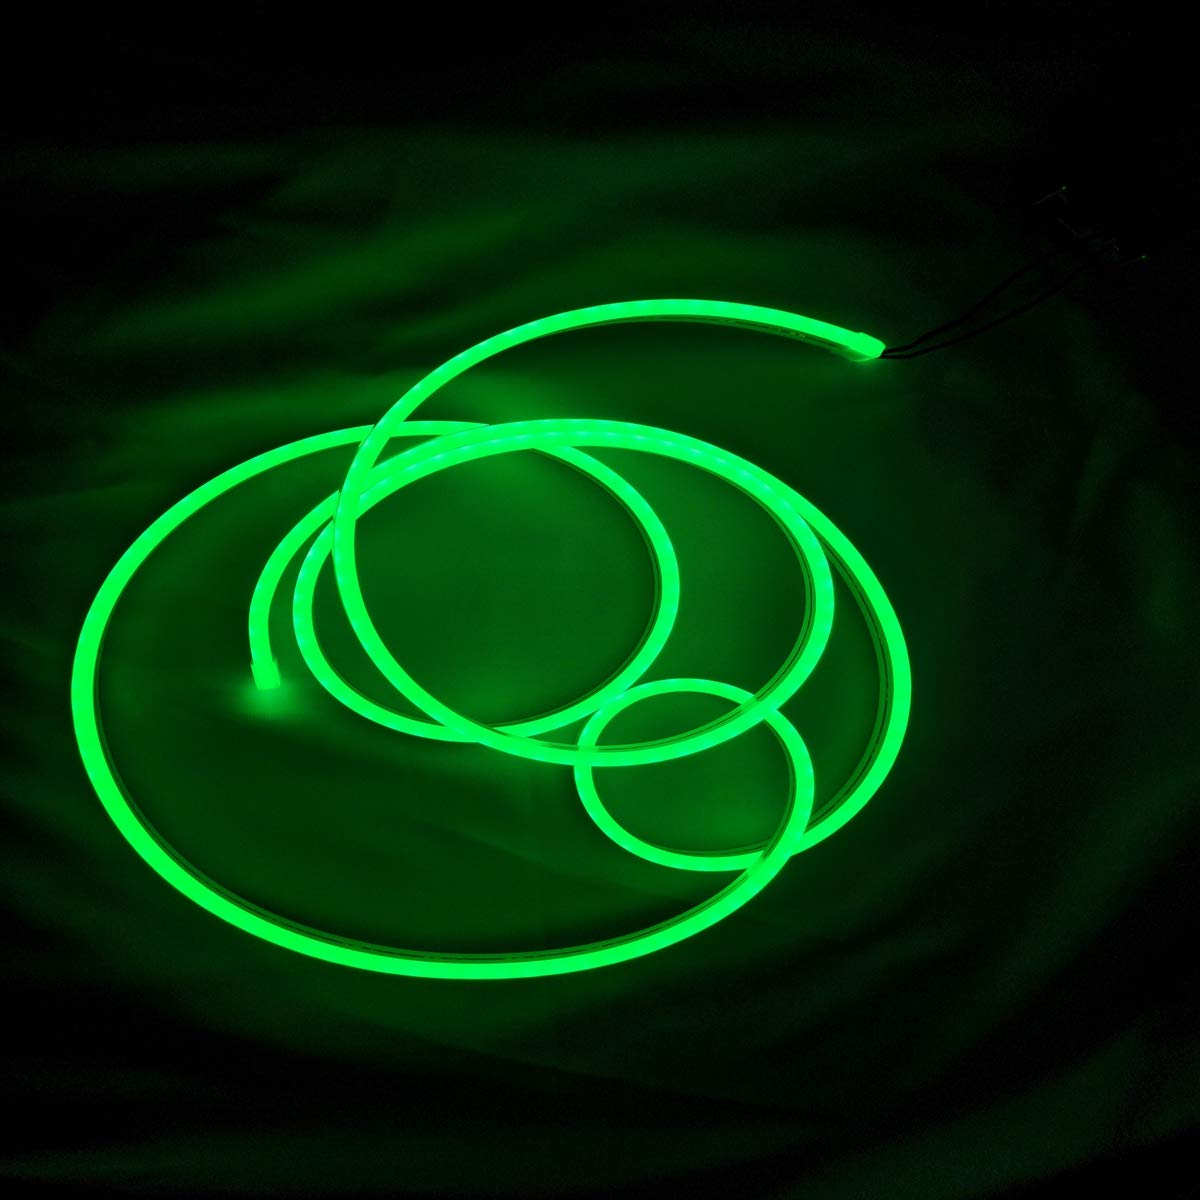 DC12V LED Silicone Neon Rope Lights,Waterproof Light Strip Kit,33FT/10m Flexible Neon Light for Indoors Outdoors Signboard, Brand Logo Letters Making and Home Festival Decor (Green)